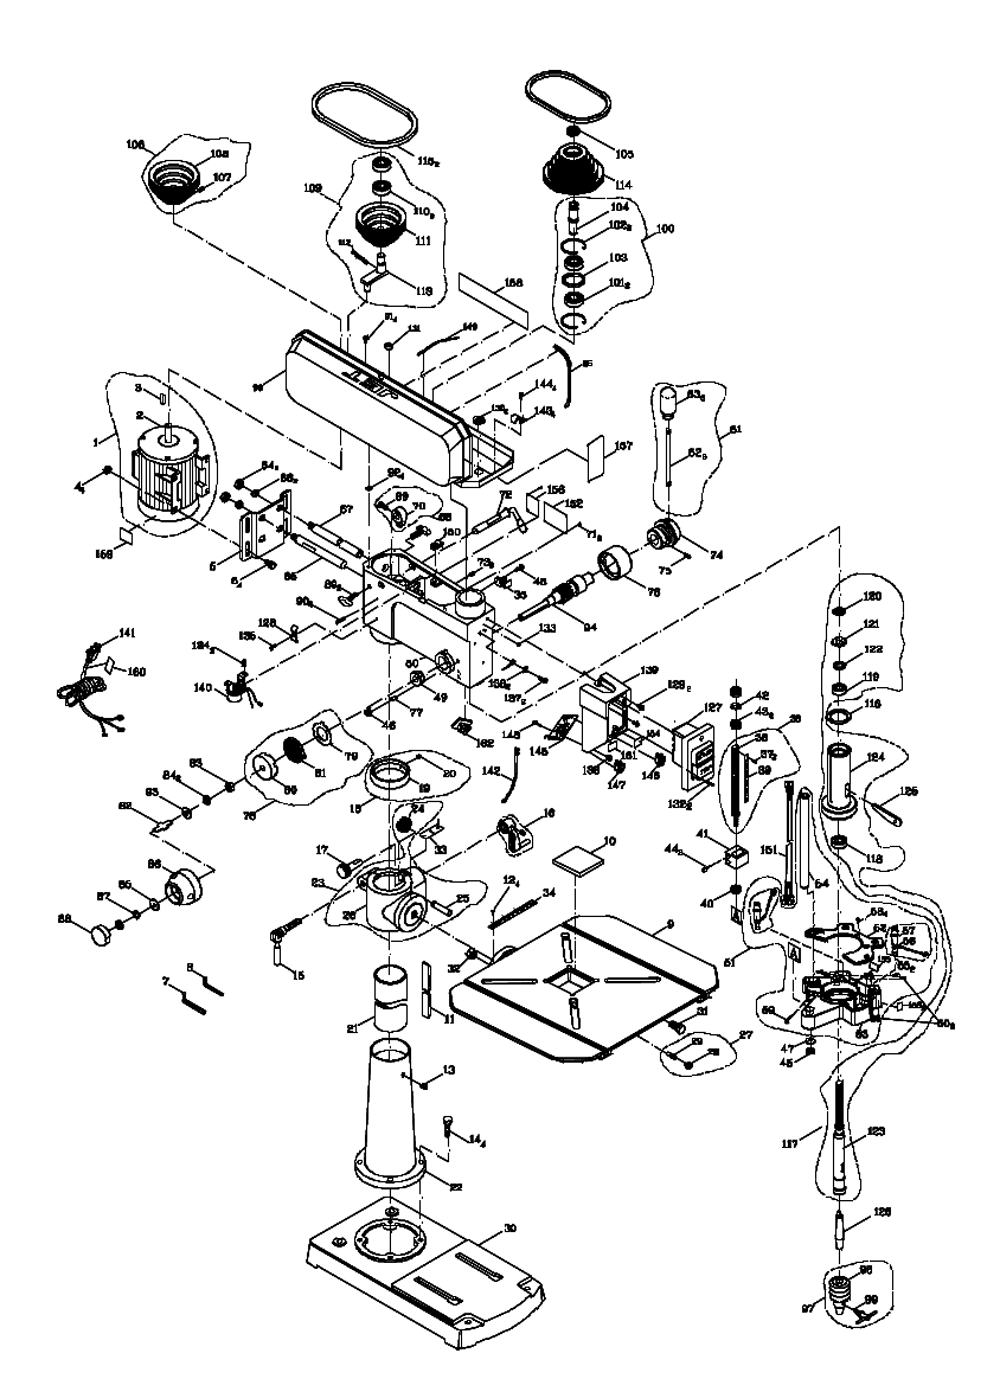 Drill Press Diagram Wiring Diagrams Buy Jet 354173 Jdp 17dx 17 Inch Replacement Tool Parts Delta